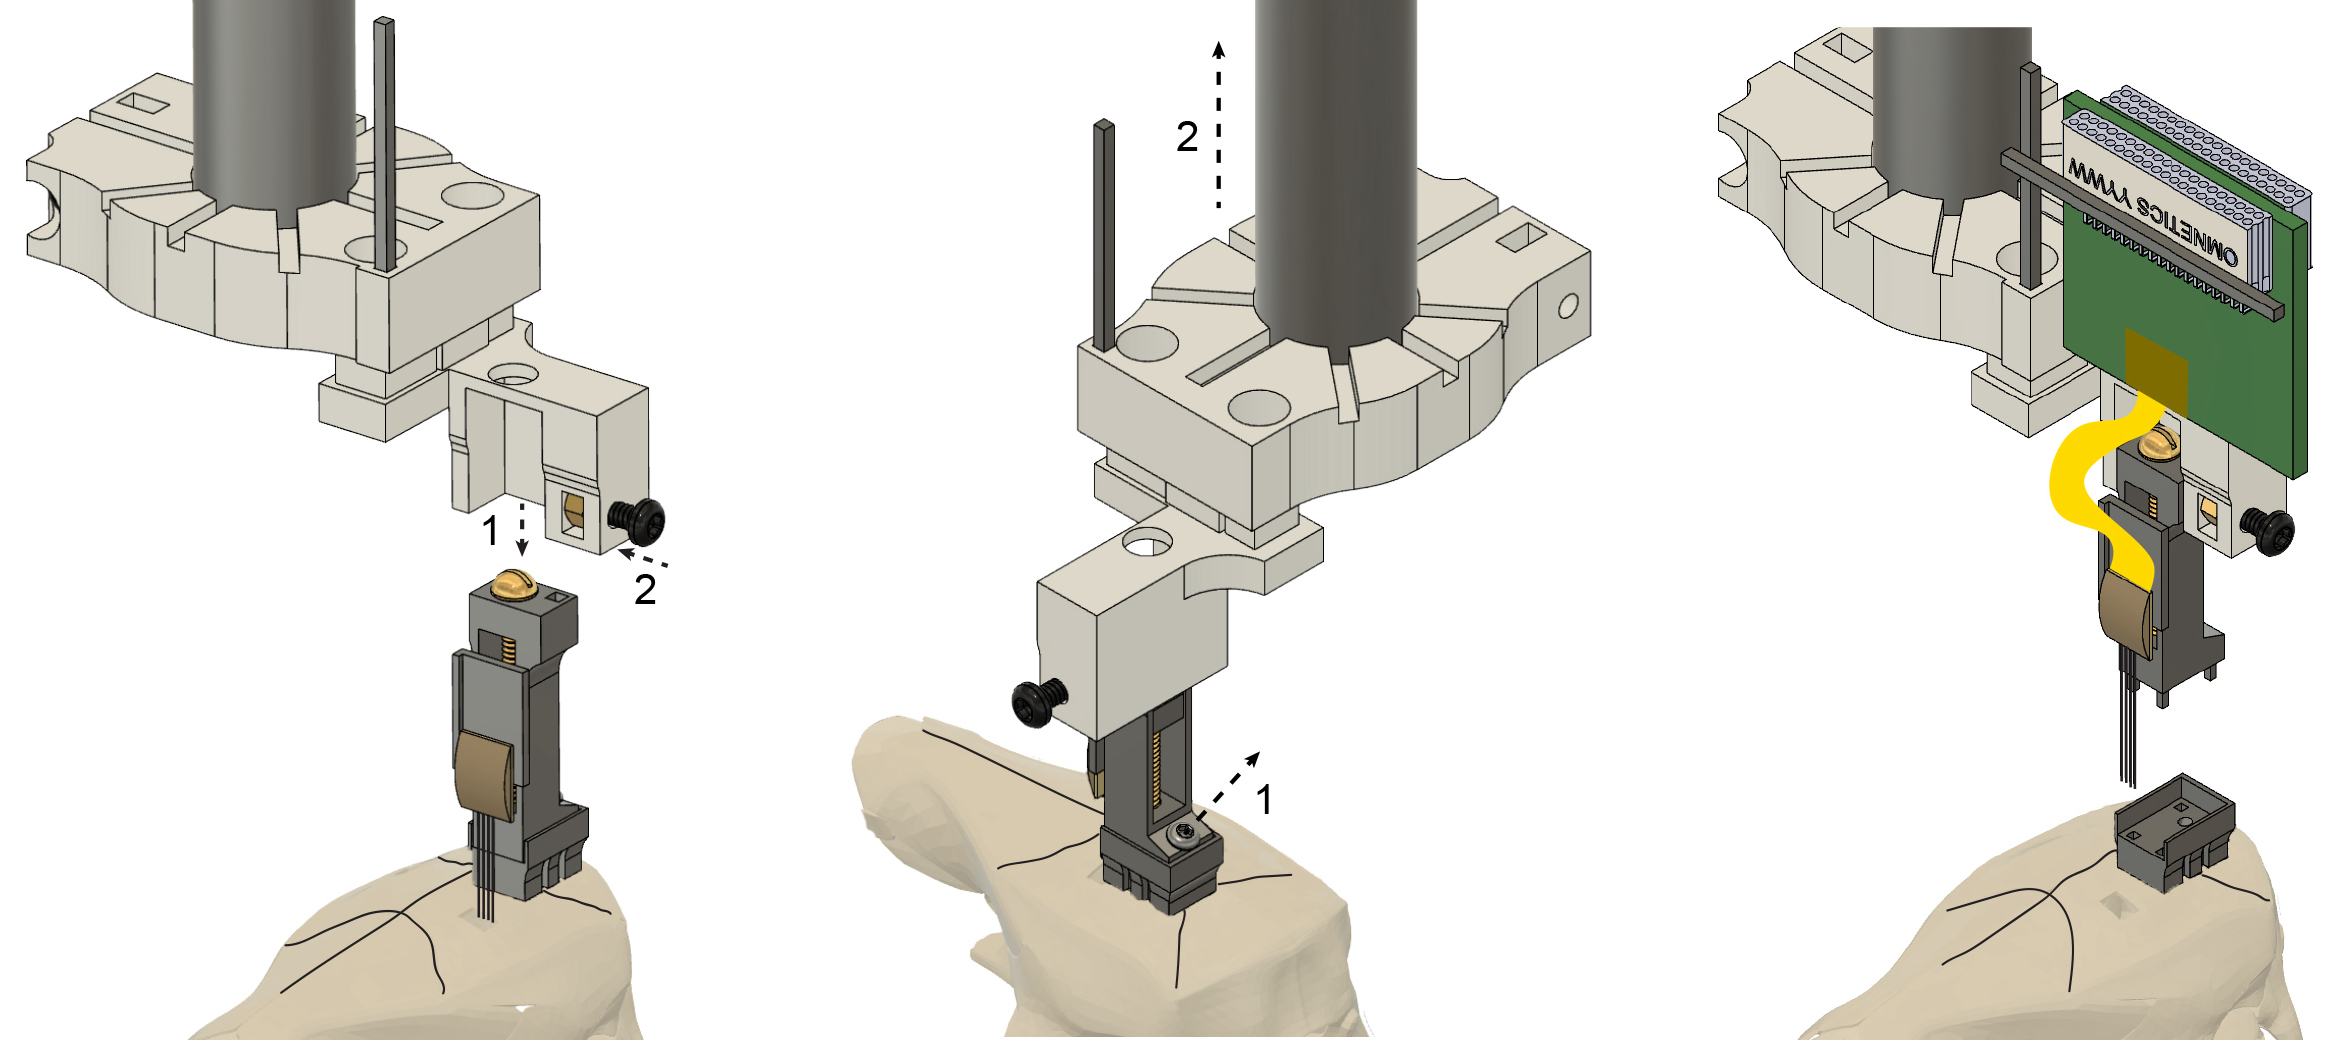 Metal microdrive and head cap system for silicon probe recovery in freely moving rodent